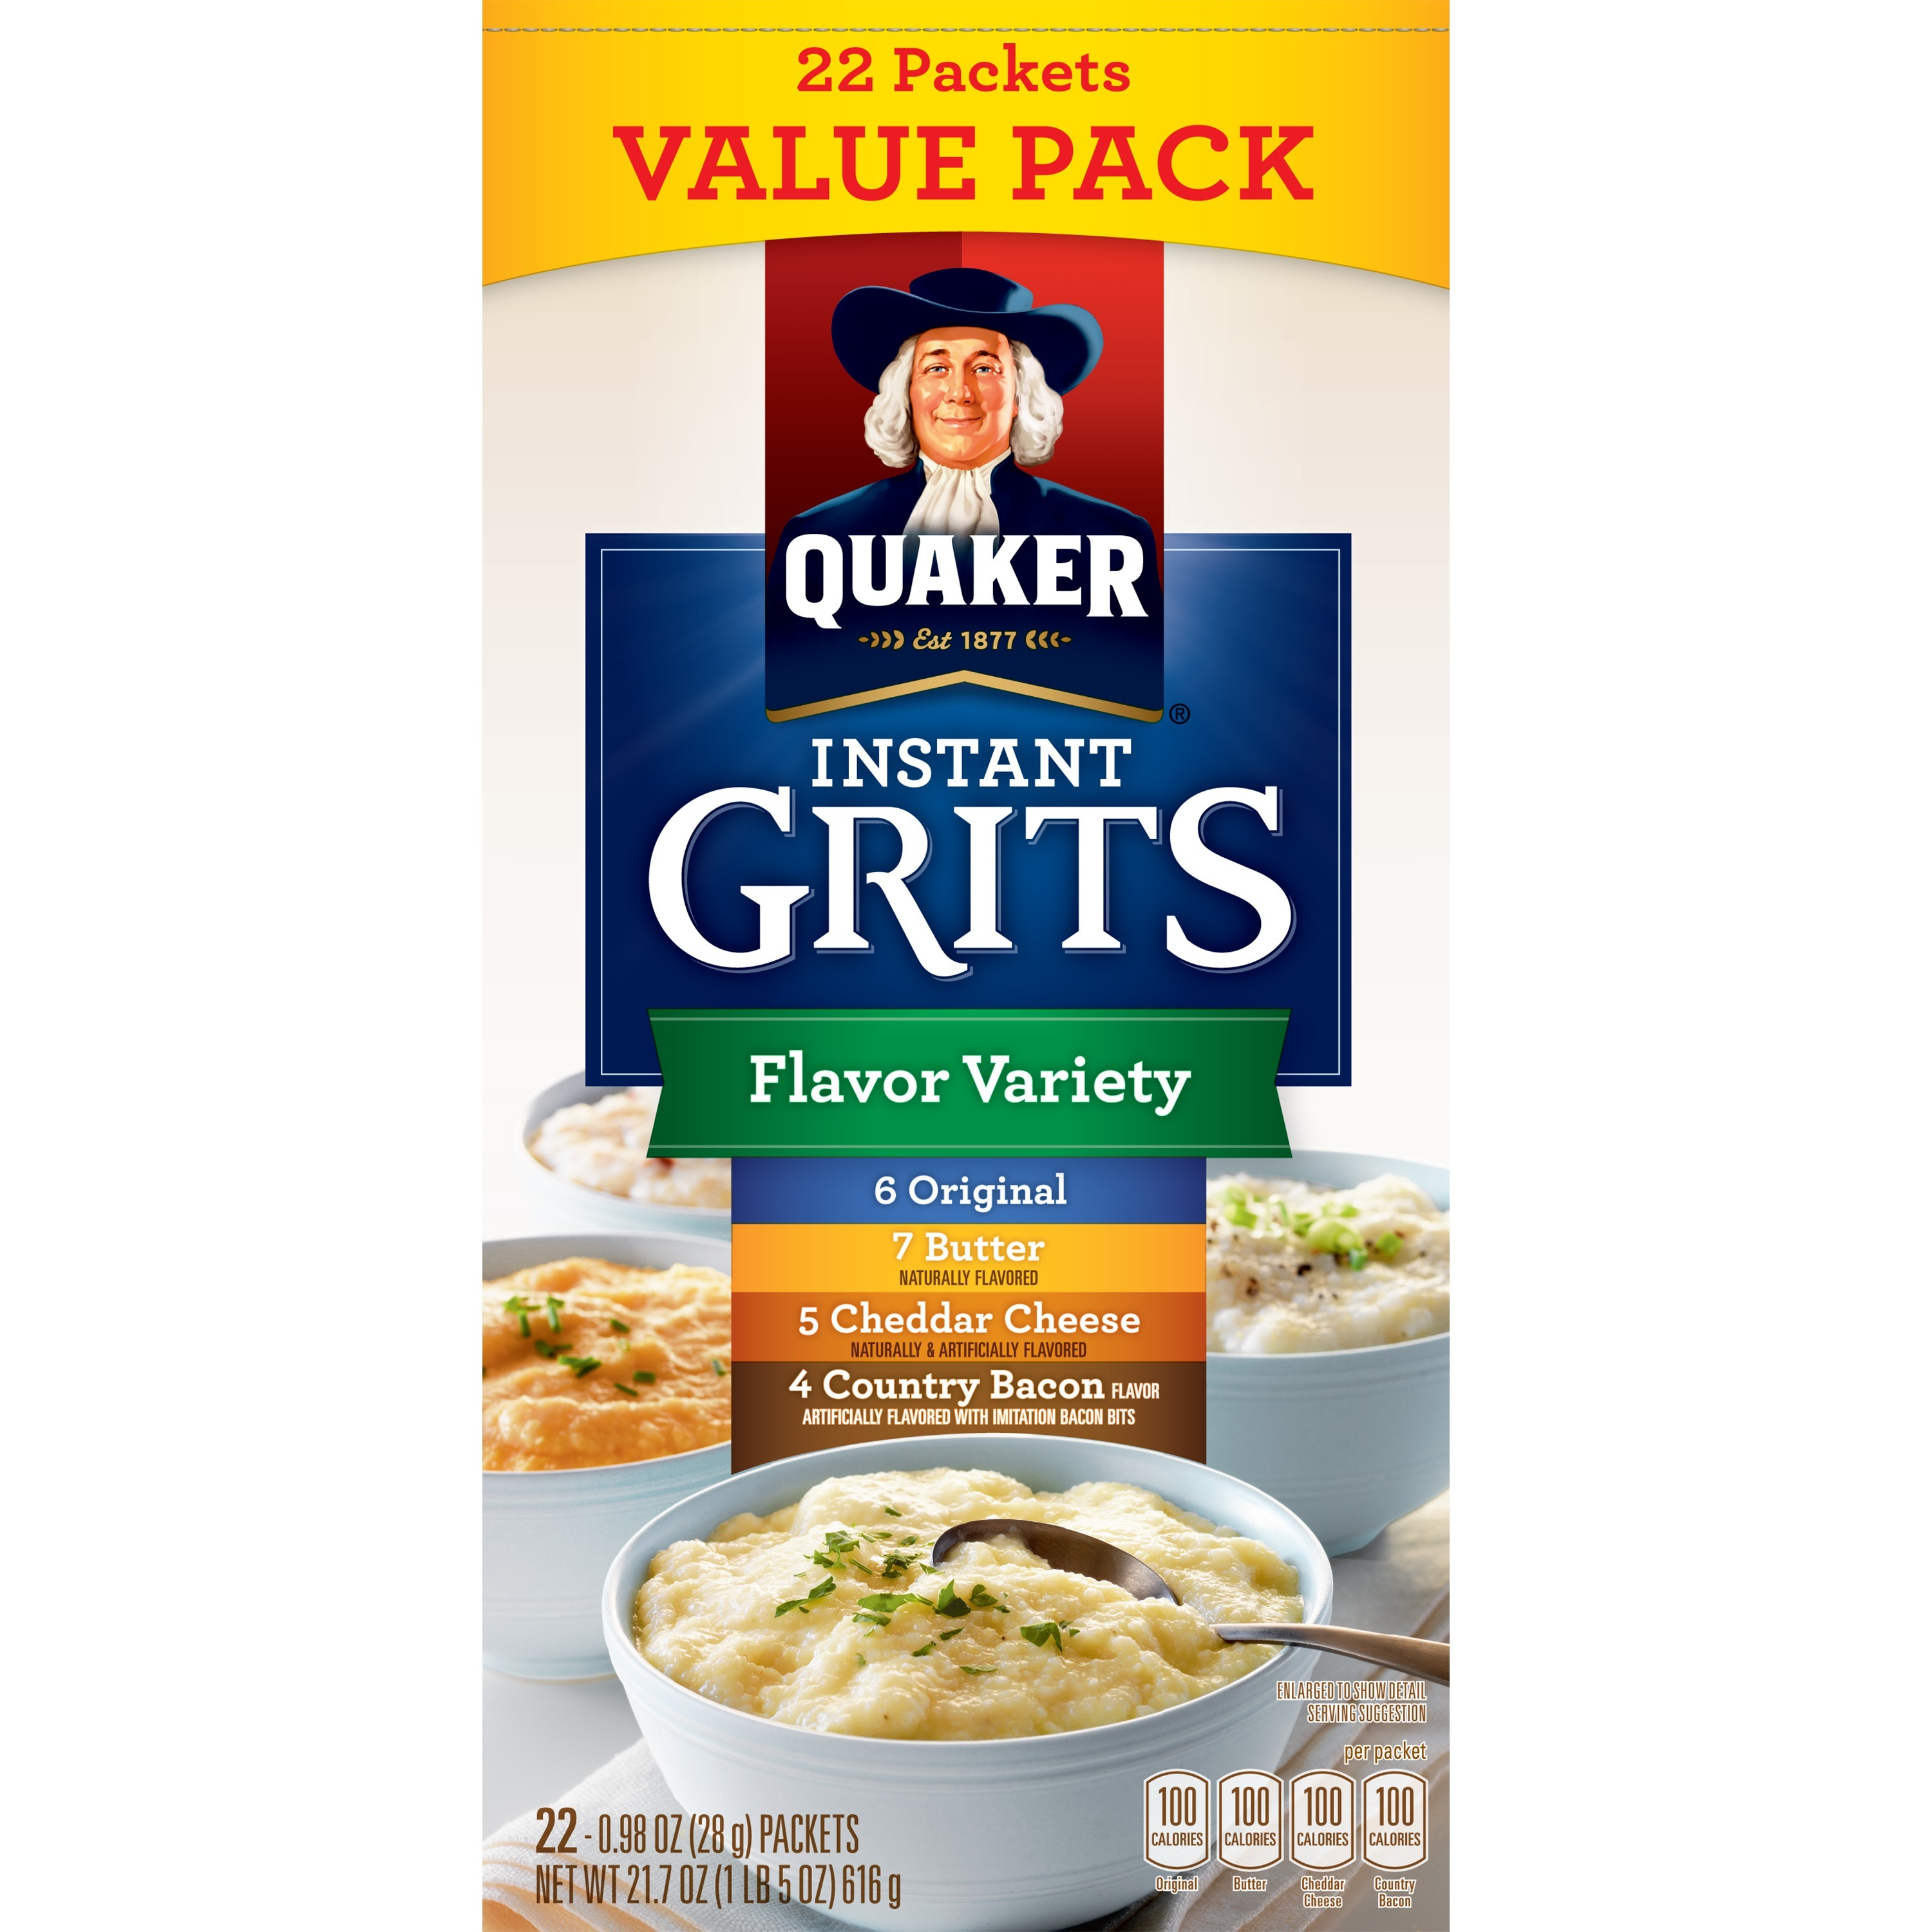 Quaker Instant Grits Flavor Variety Pack, 22 Packets